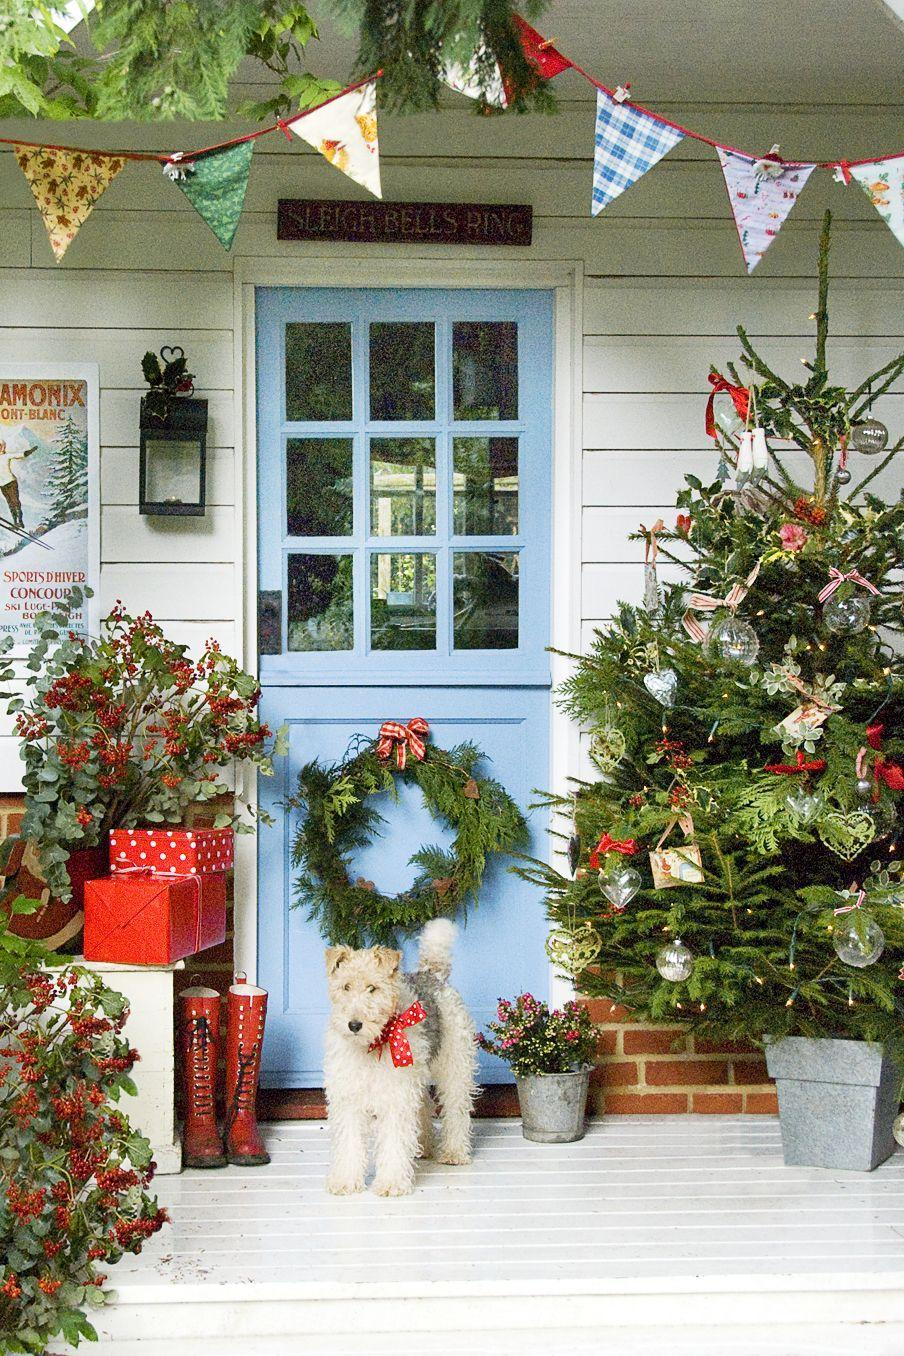 "<p>It's all about placement: Hang a wreath down low, so that guests can still get a peek at the Christmas tree glimmering inside. </p><p><strong>RELATED:</strong> <a href=""https://www.goodhousekeeping.com/holidays/christmas-ideas/g2966/christmas-decoration-hanging-hacks/"" rel=""nofollow noopener"" target=""_blank"" data-ylk=""slk:Tricks to Make Hanging Christmas Decorations Way Easier"" class=""link rapid-noclick-resp"">Tricks to Make Hanging Christmas Decorations Way Easier</a></p>"